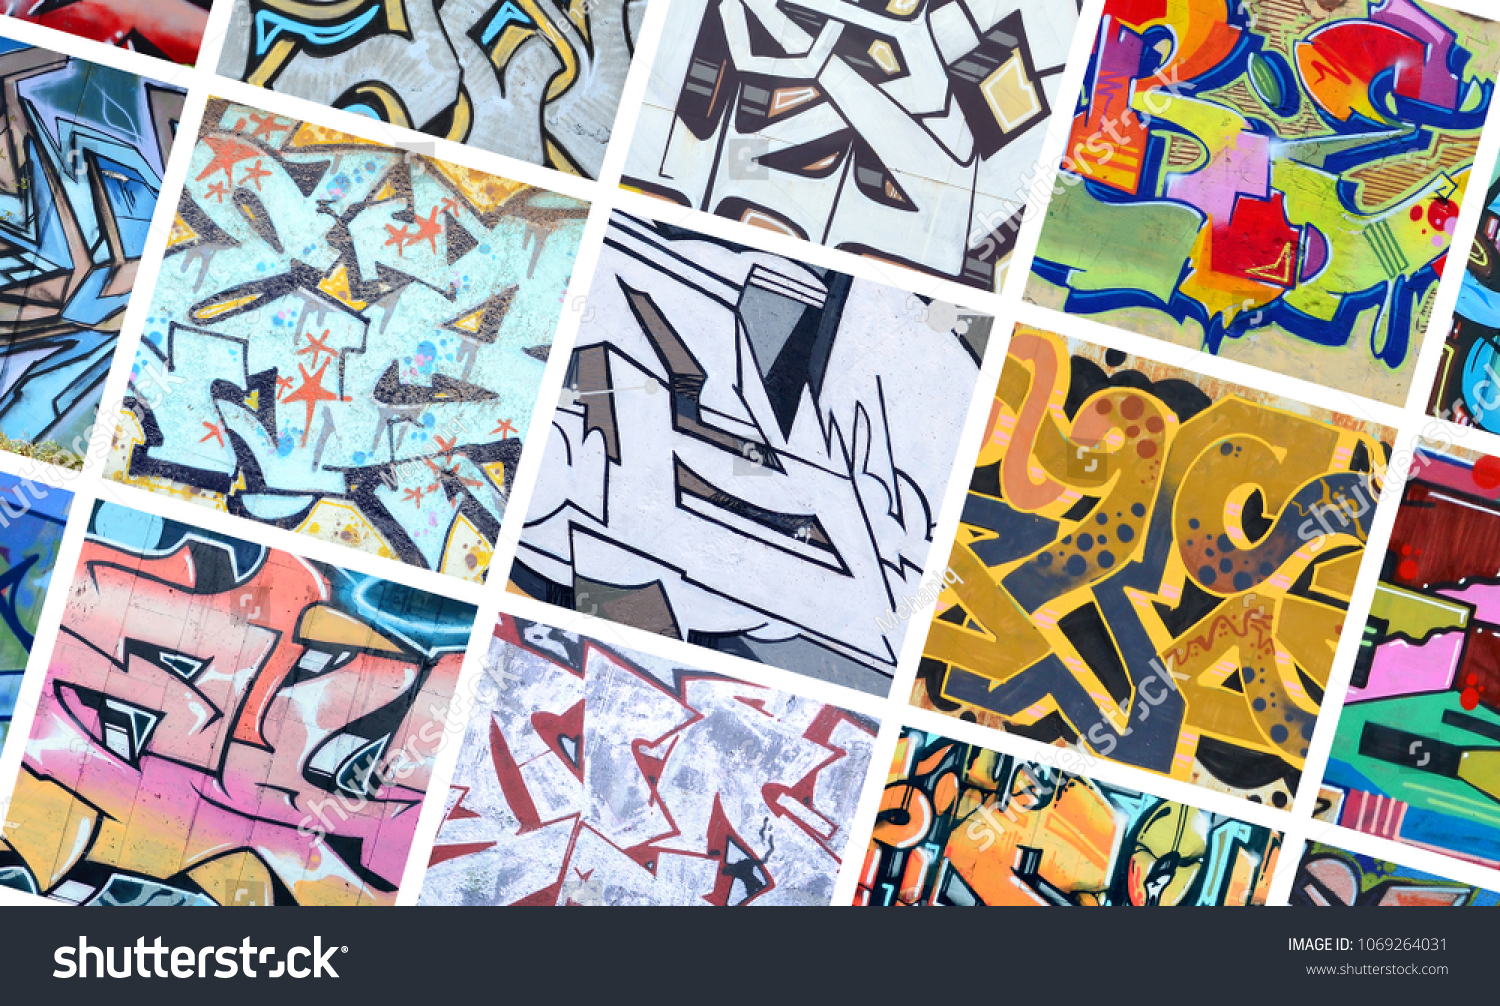 A set of many small fragments of graffiti drawings street art abstract background collage